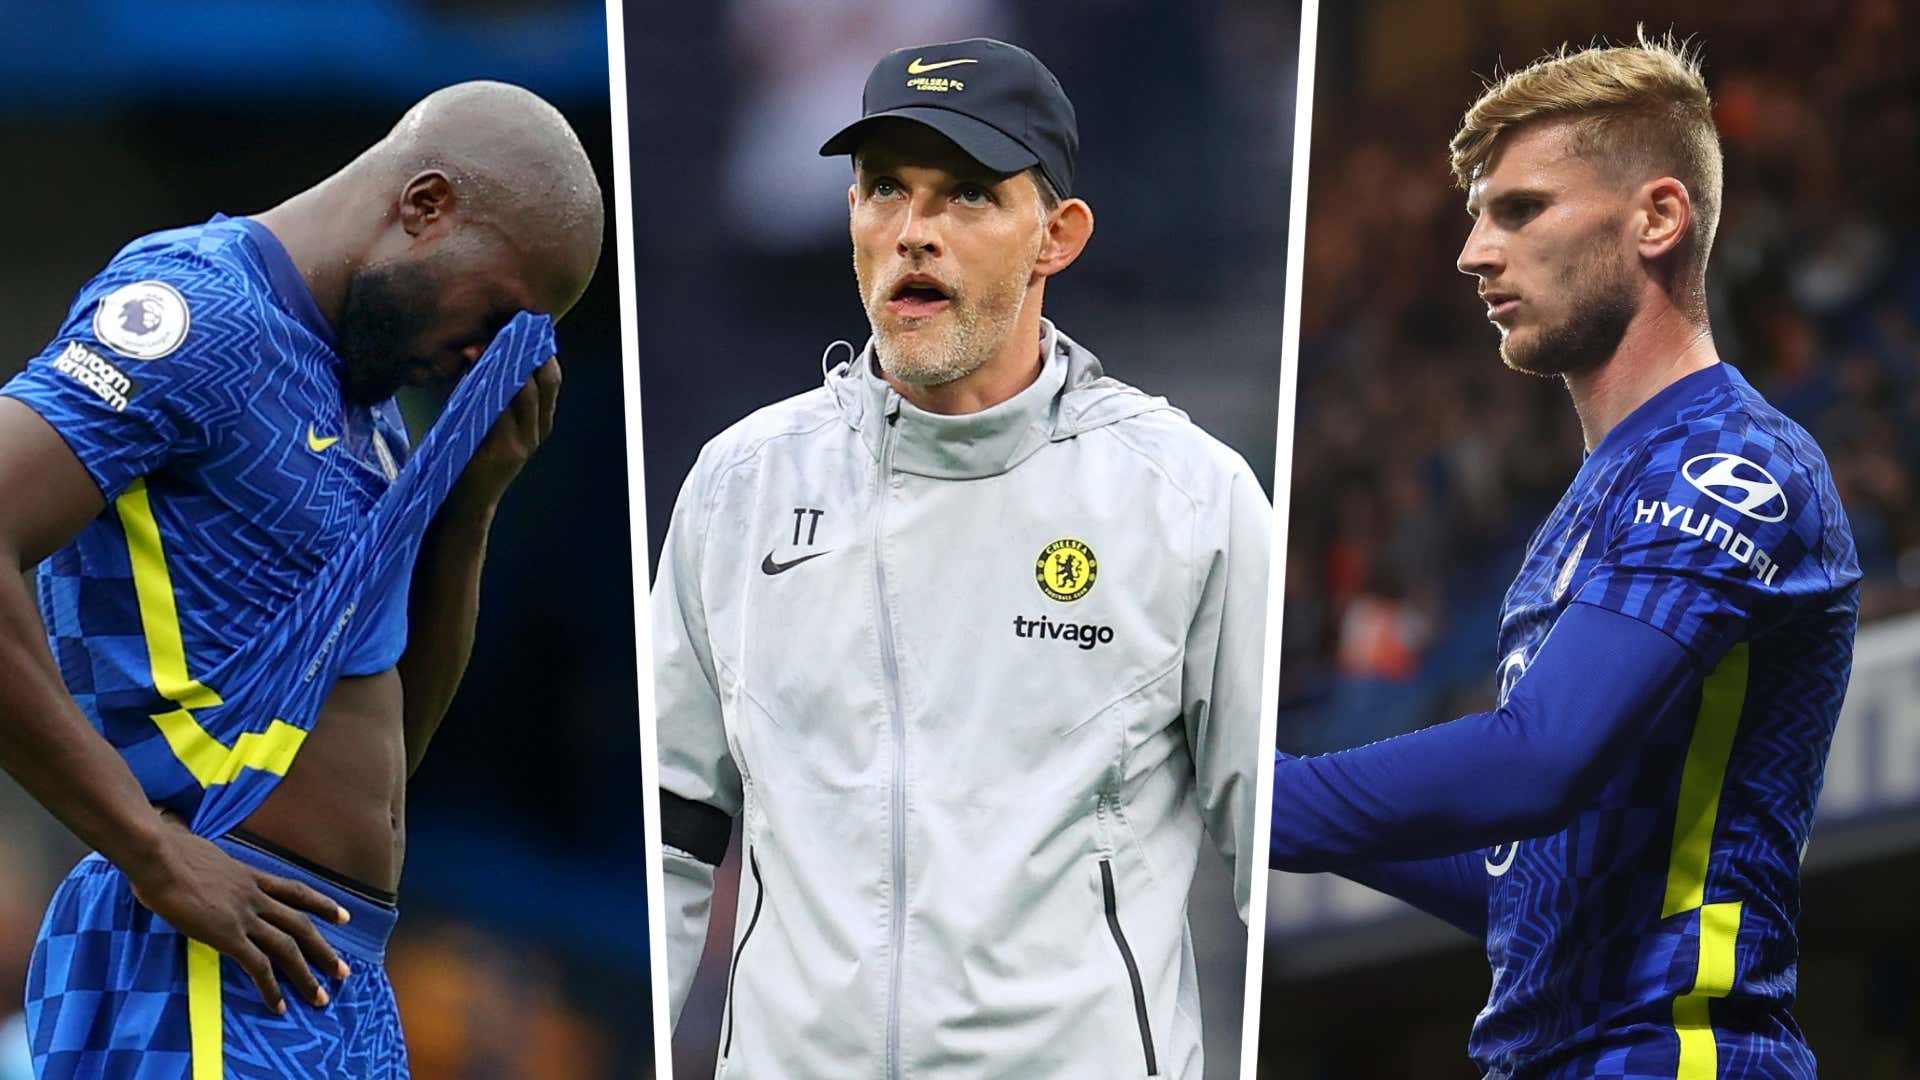 A blessing in disguise for Chelsea? Lukaku & Werner injuries should force Tuchel into a tactical change | Goal.com